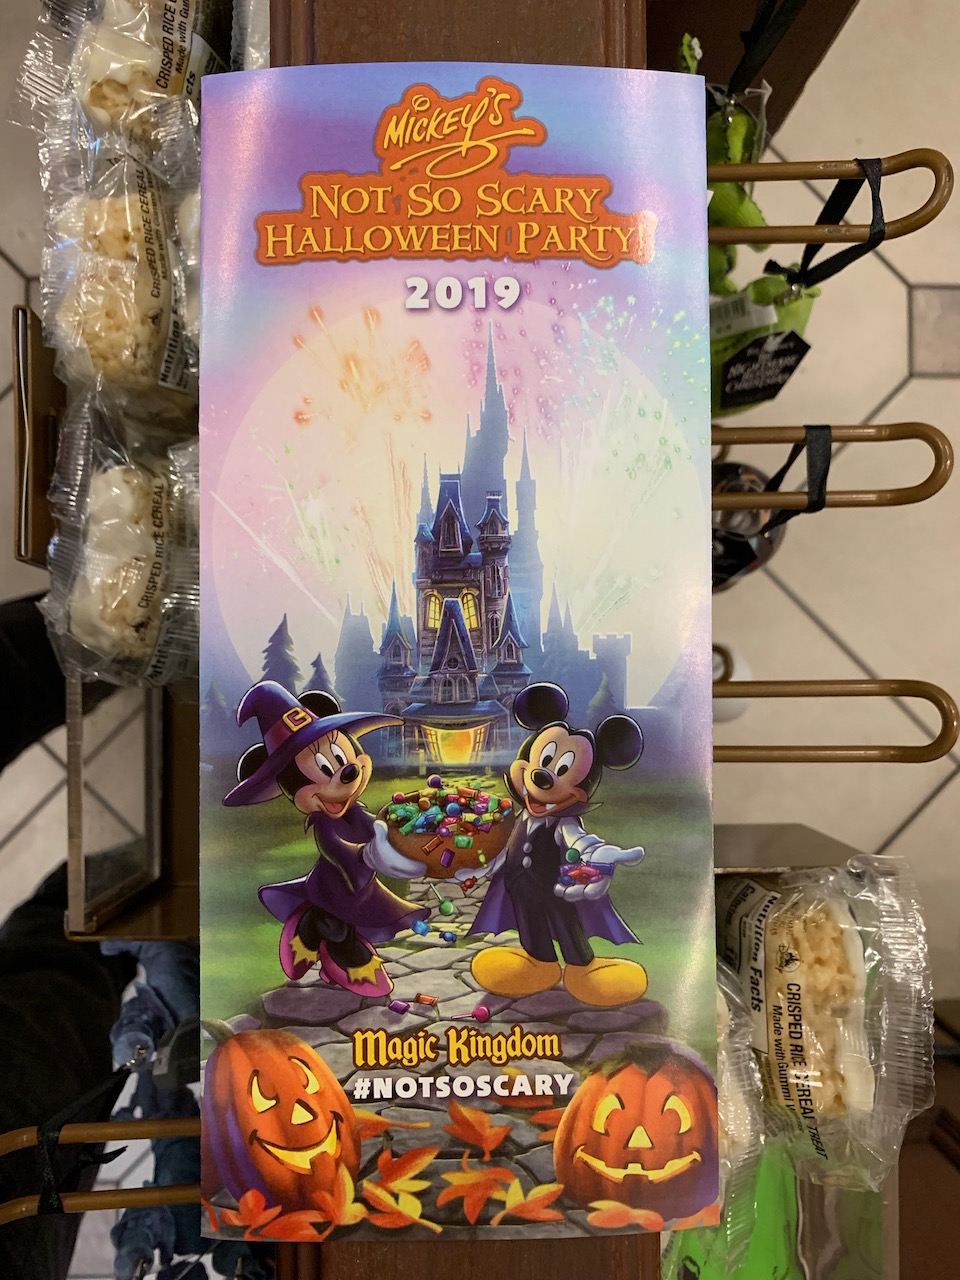 Not So Scary Halloween Party 2020 Map 2020 Mickey's Not So Scary Halloween Party Guide   Mouse Hacking